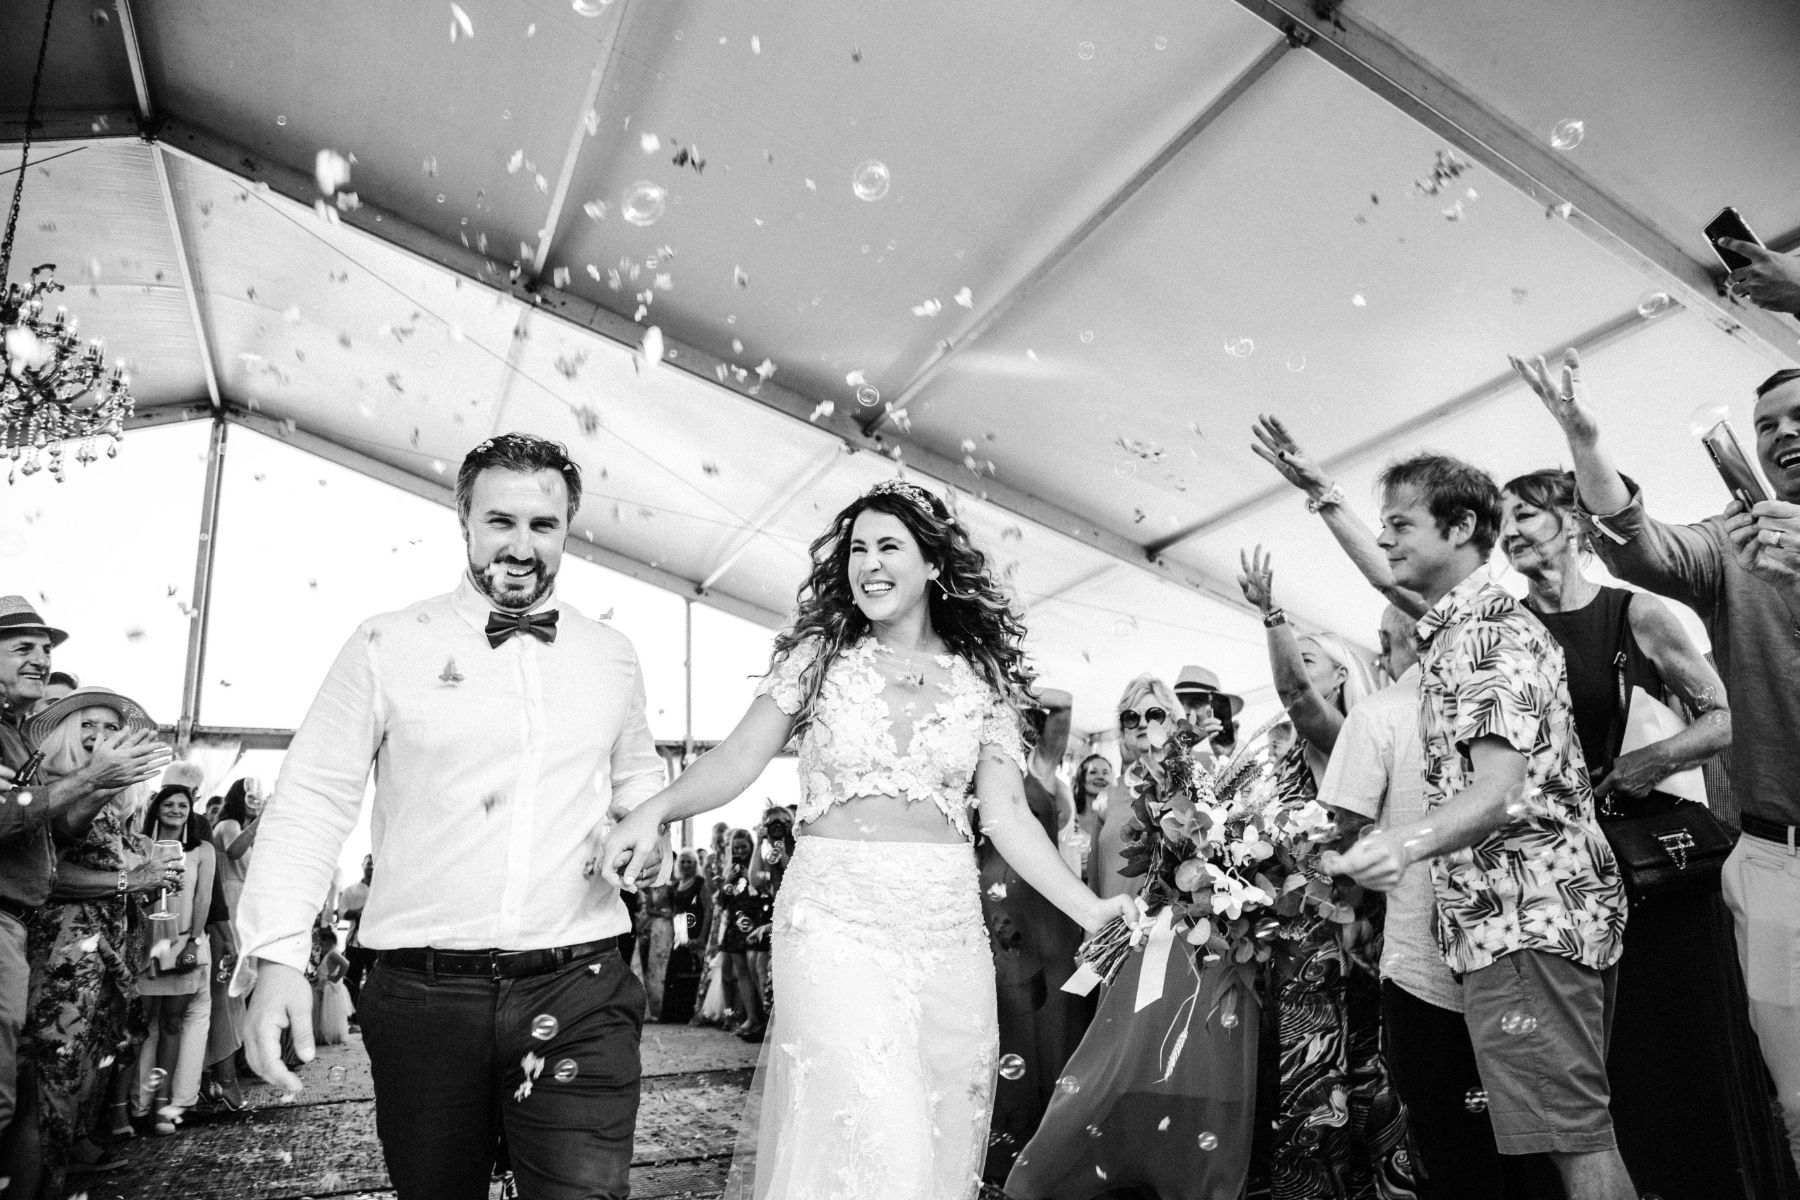 Wedding portfolio image of happy bohemian wedding couple surrounded by wedding guests throwing confetti in celebration, bride wears fashionable two piece wedding dress